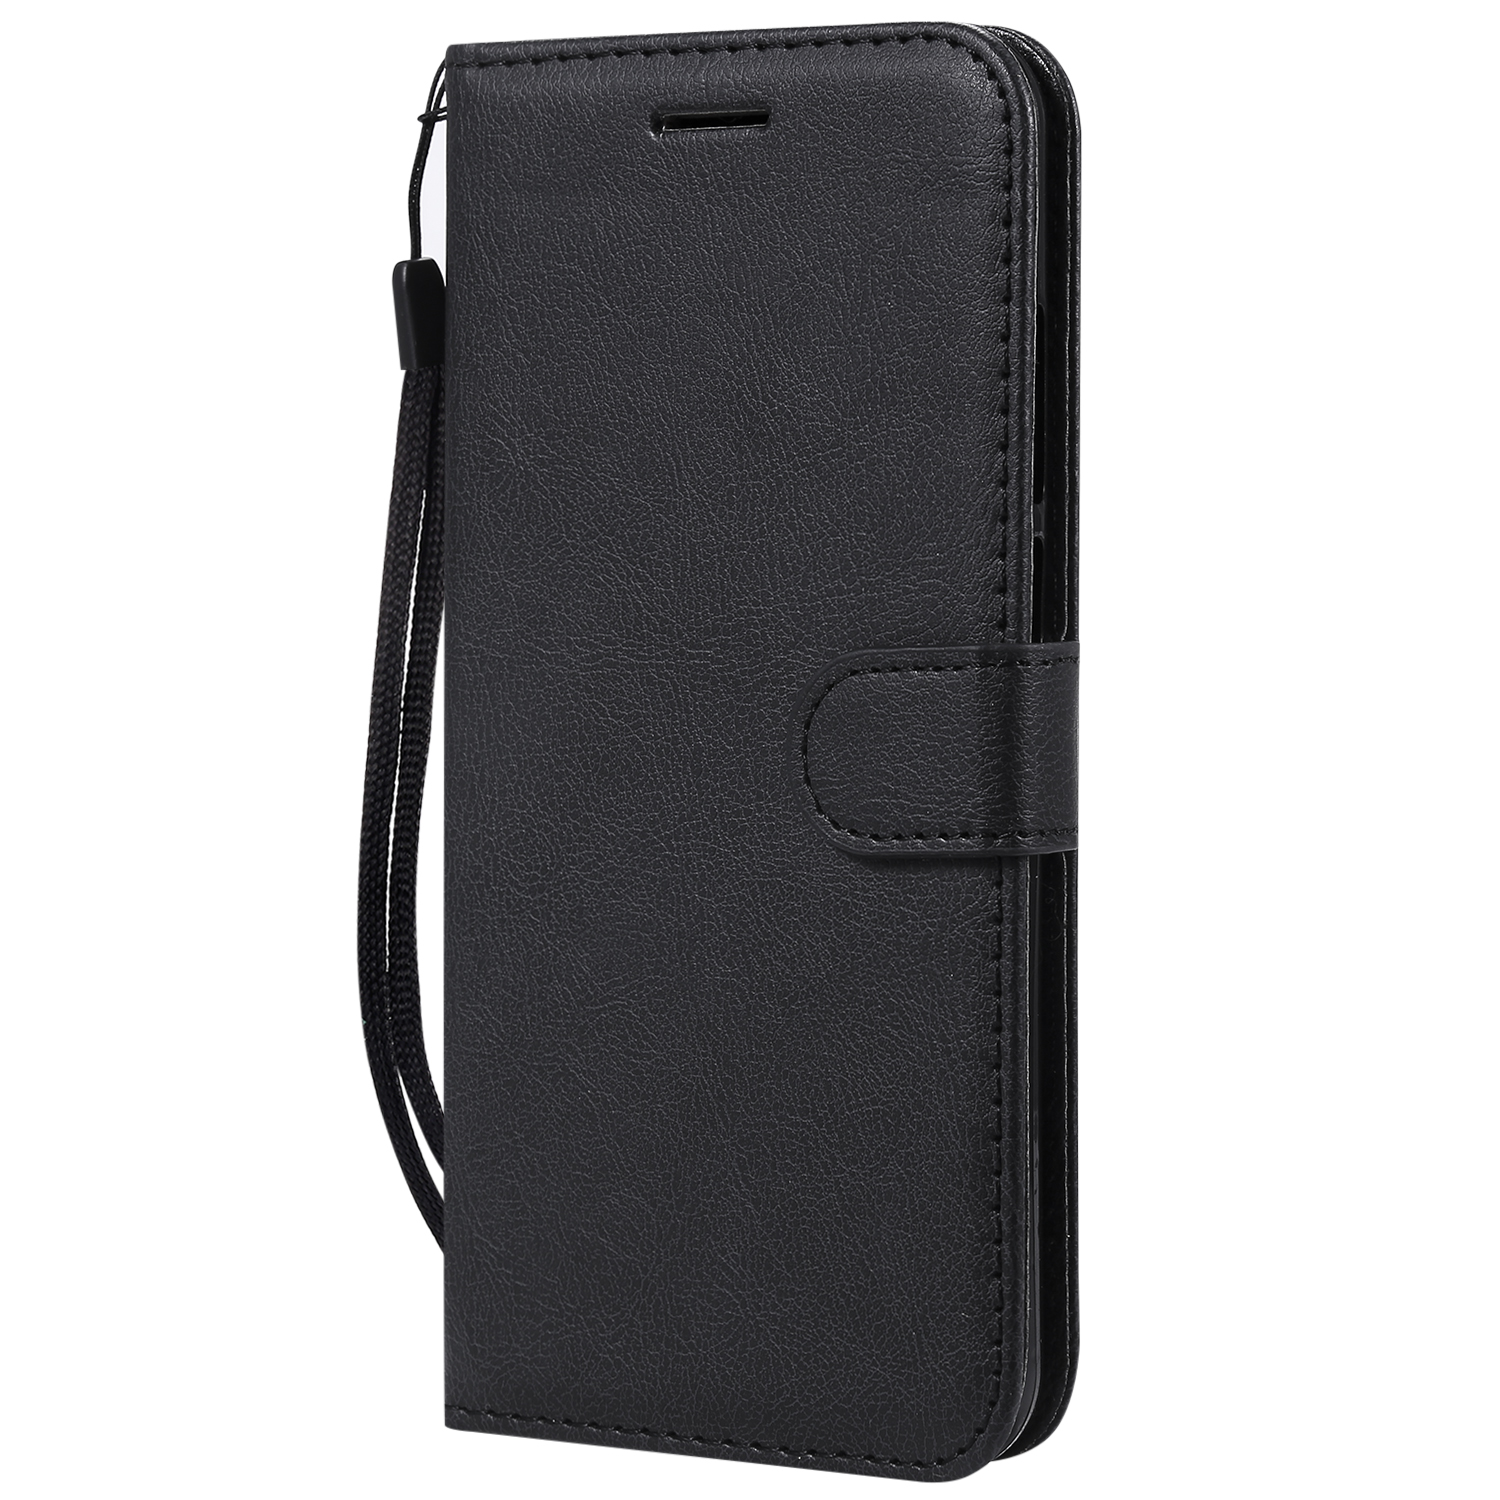 Y6 (2019) Flip Leather Case For Fundas Huawei Y6 2019 Cover For Coque Huawei Y6 Prime 2019 Book Wallet Cases Mobile Phone Bag